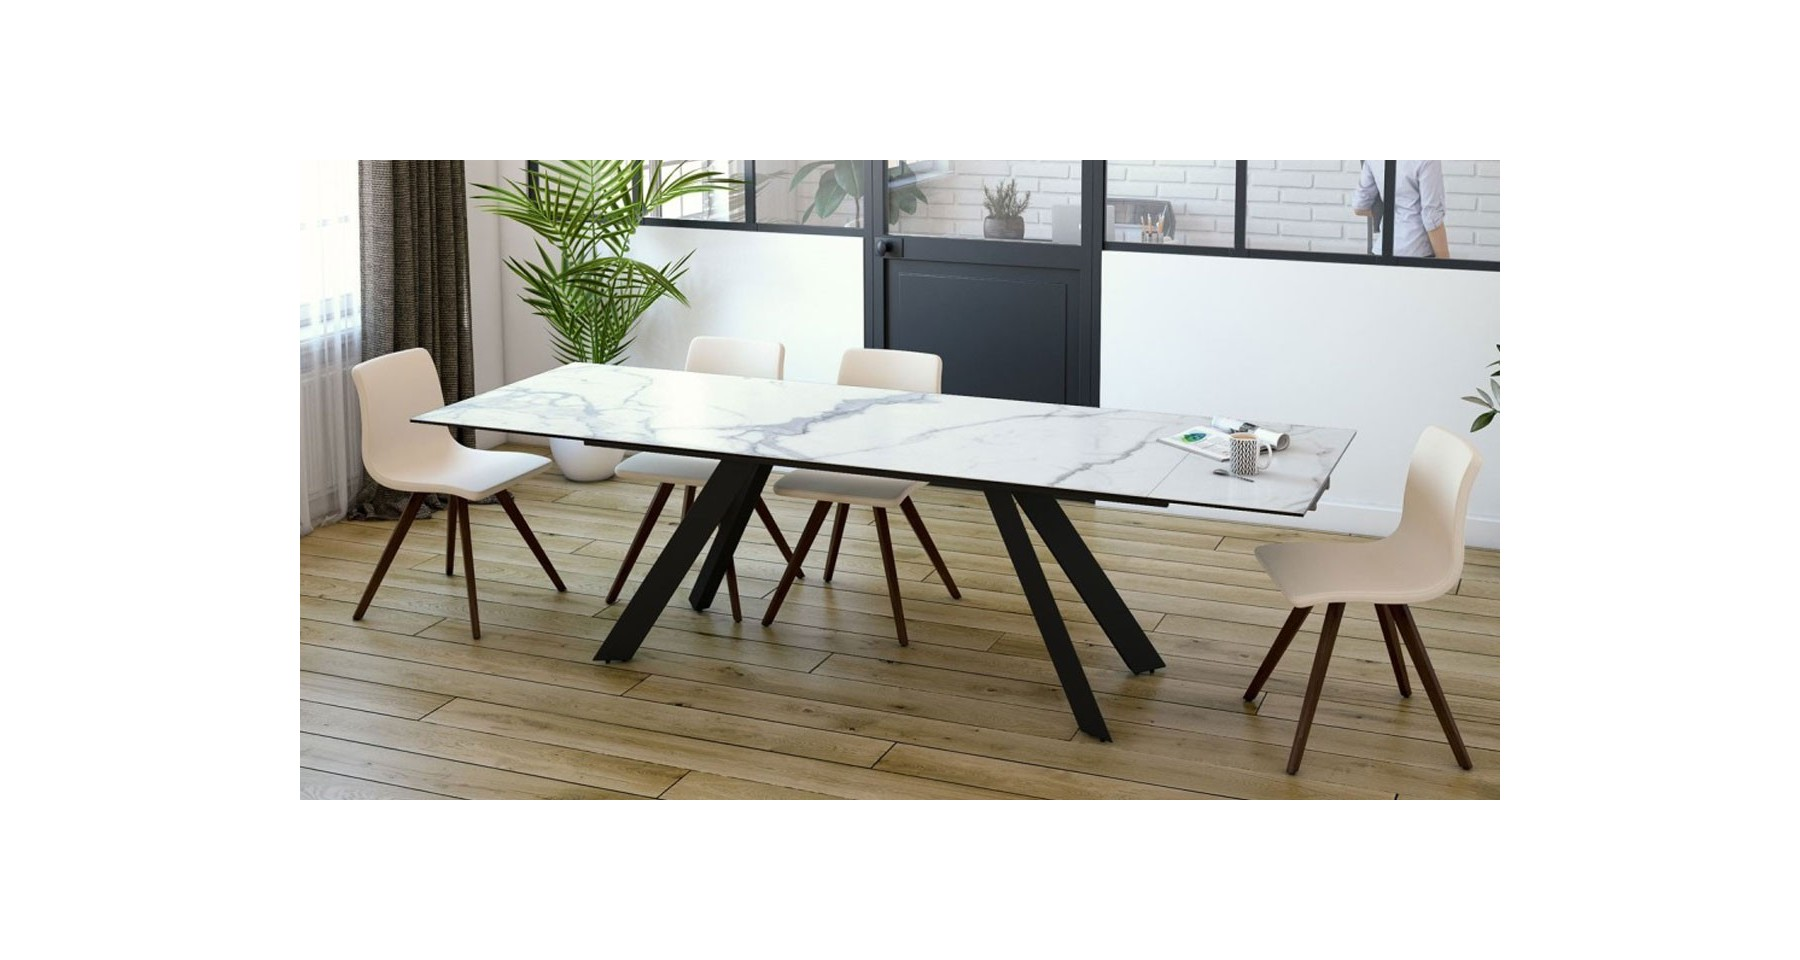 Table Repas Extensible Table De Repas Extensible Au Design Contemporain Cinabre 3 Coloris